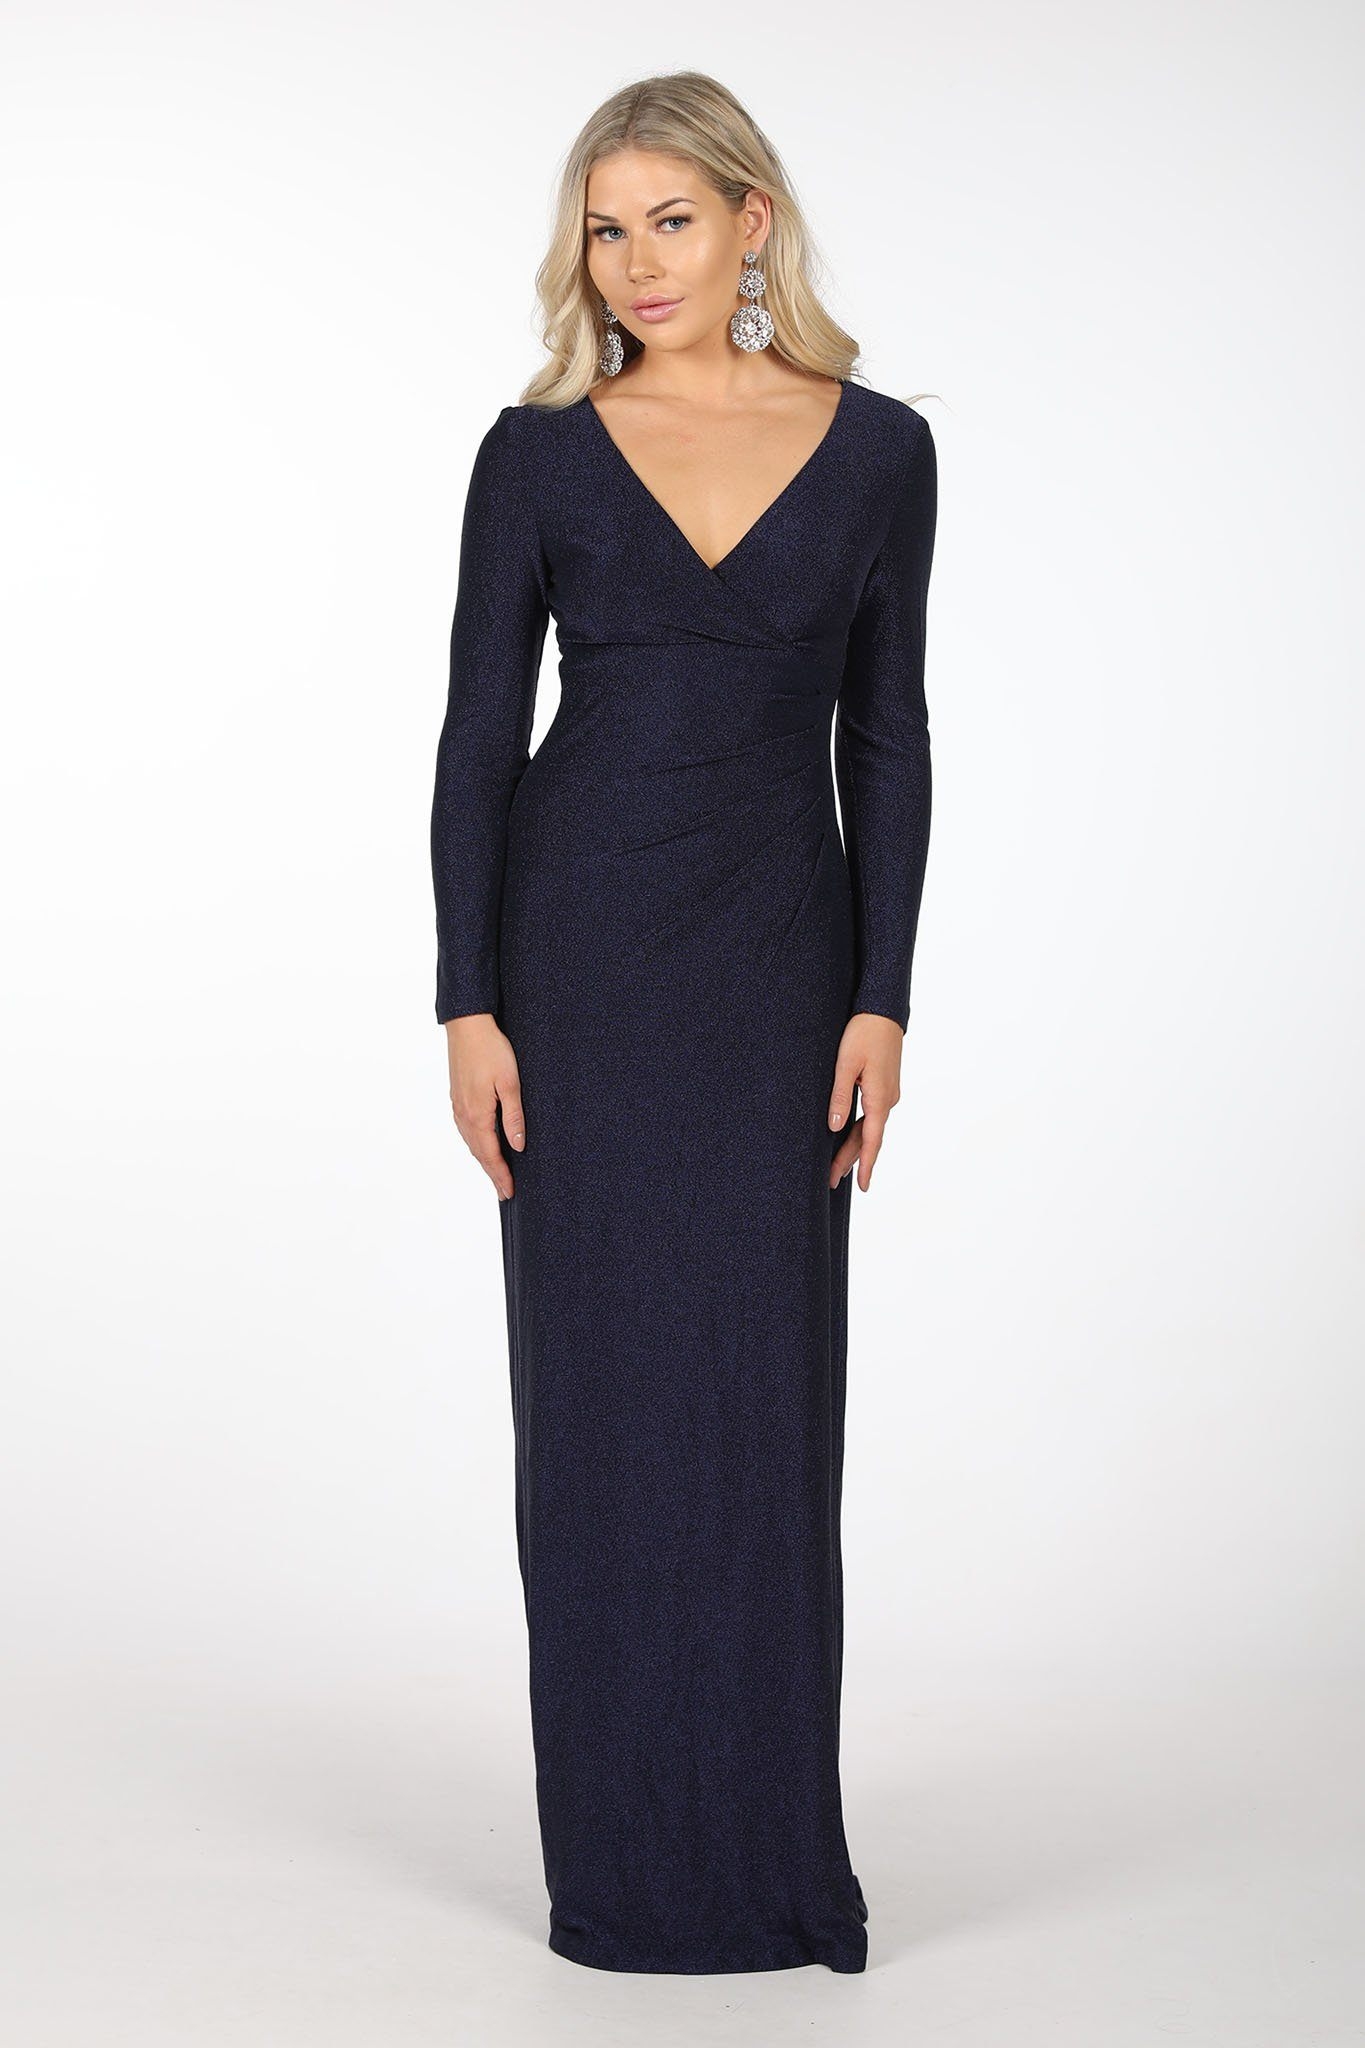 Navy Blue Glitter Bodycon Column Maxi Dress with Long Sleeves, V Neck and Pleating Details at Waist